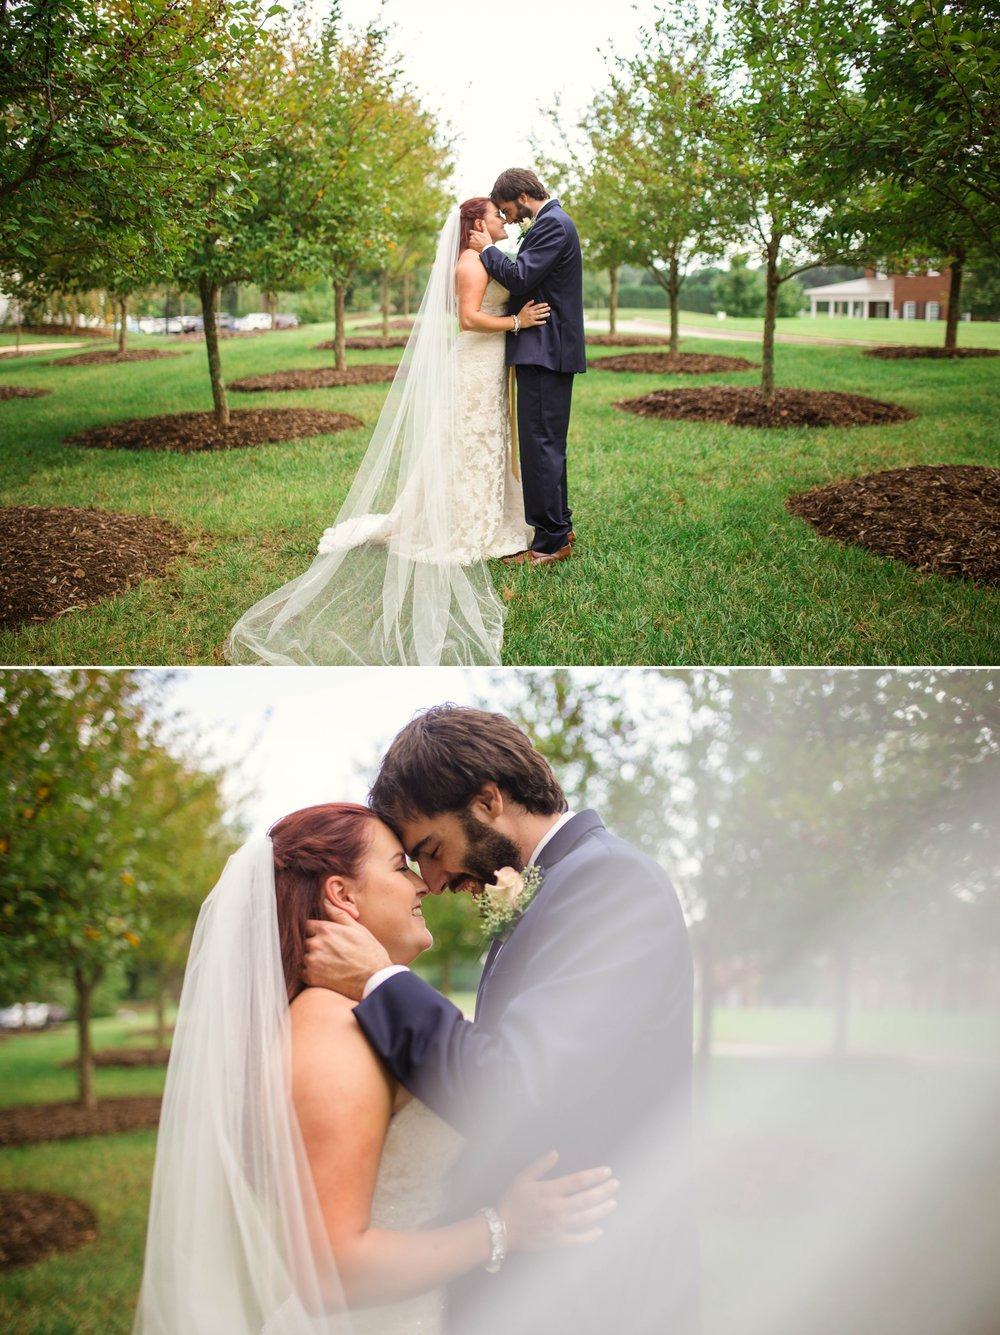 Sydney + Blake - Wedding at the Granary at Winmock at Kinderton in Bermuda Run, North Carolina - Winston-Salem NC Photographer